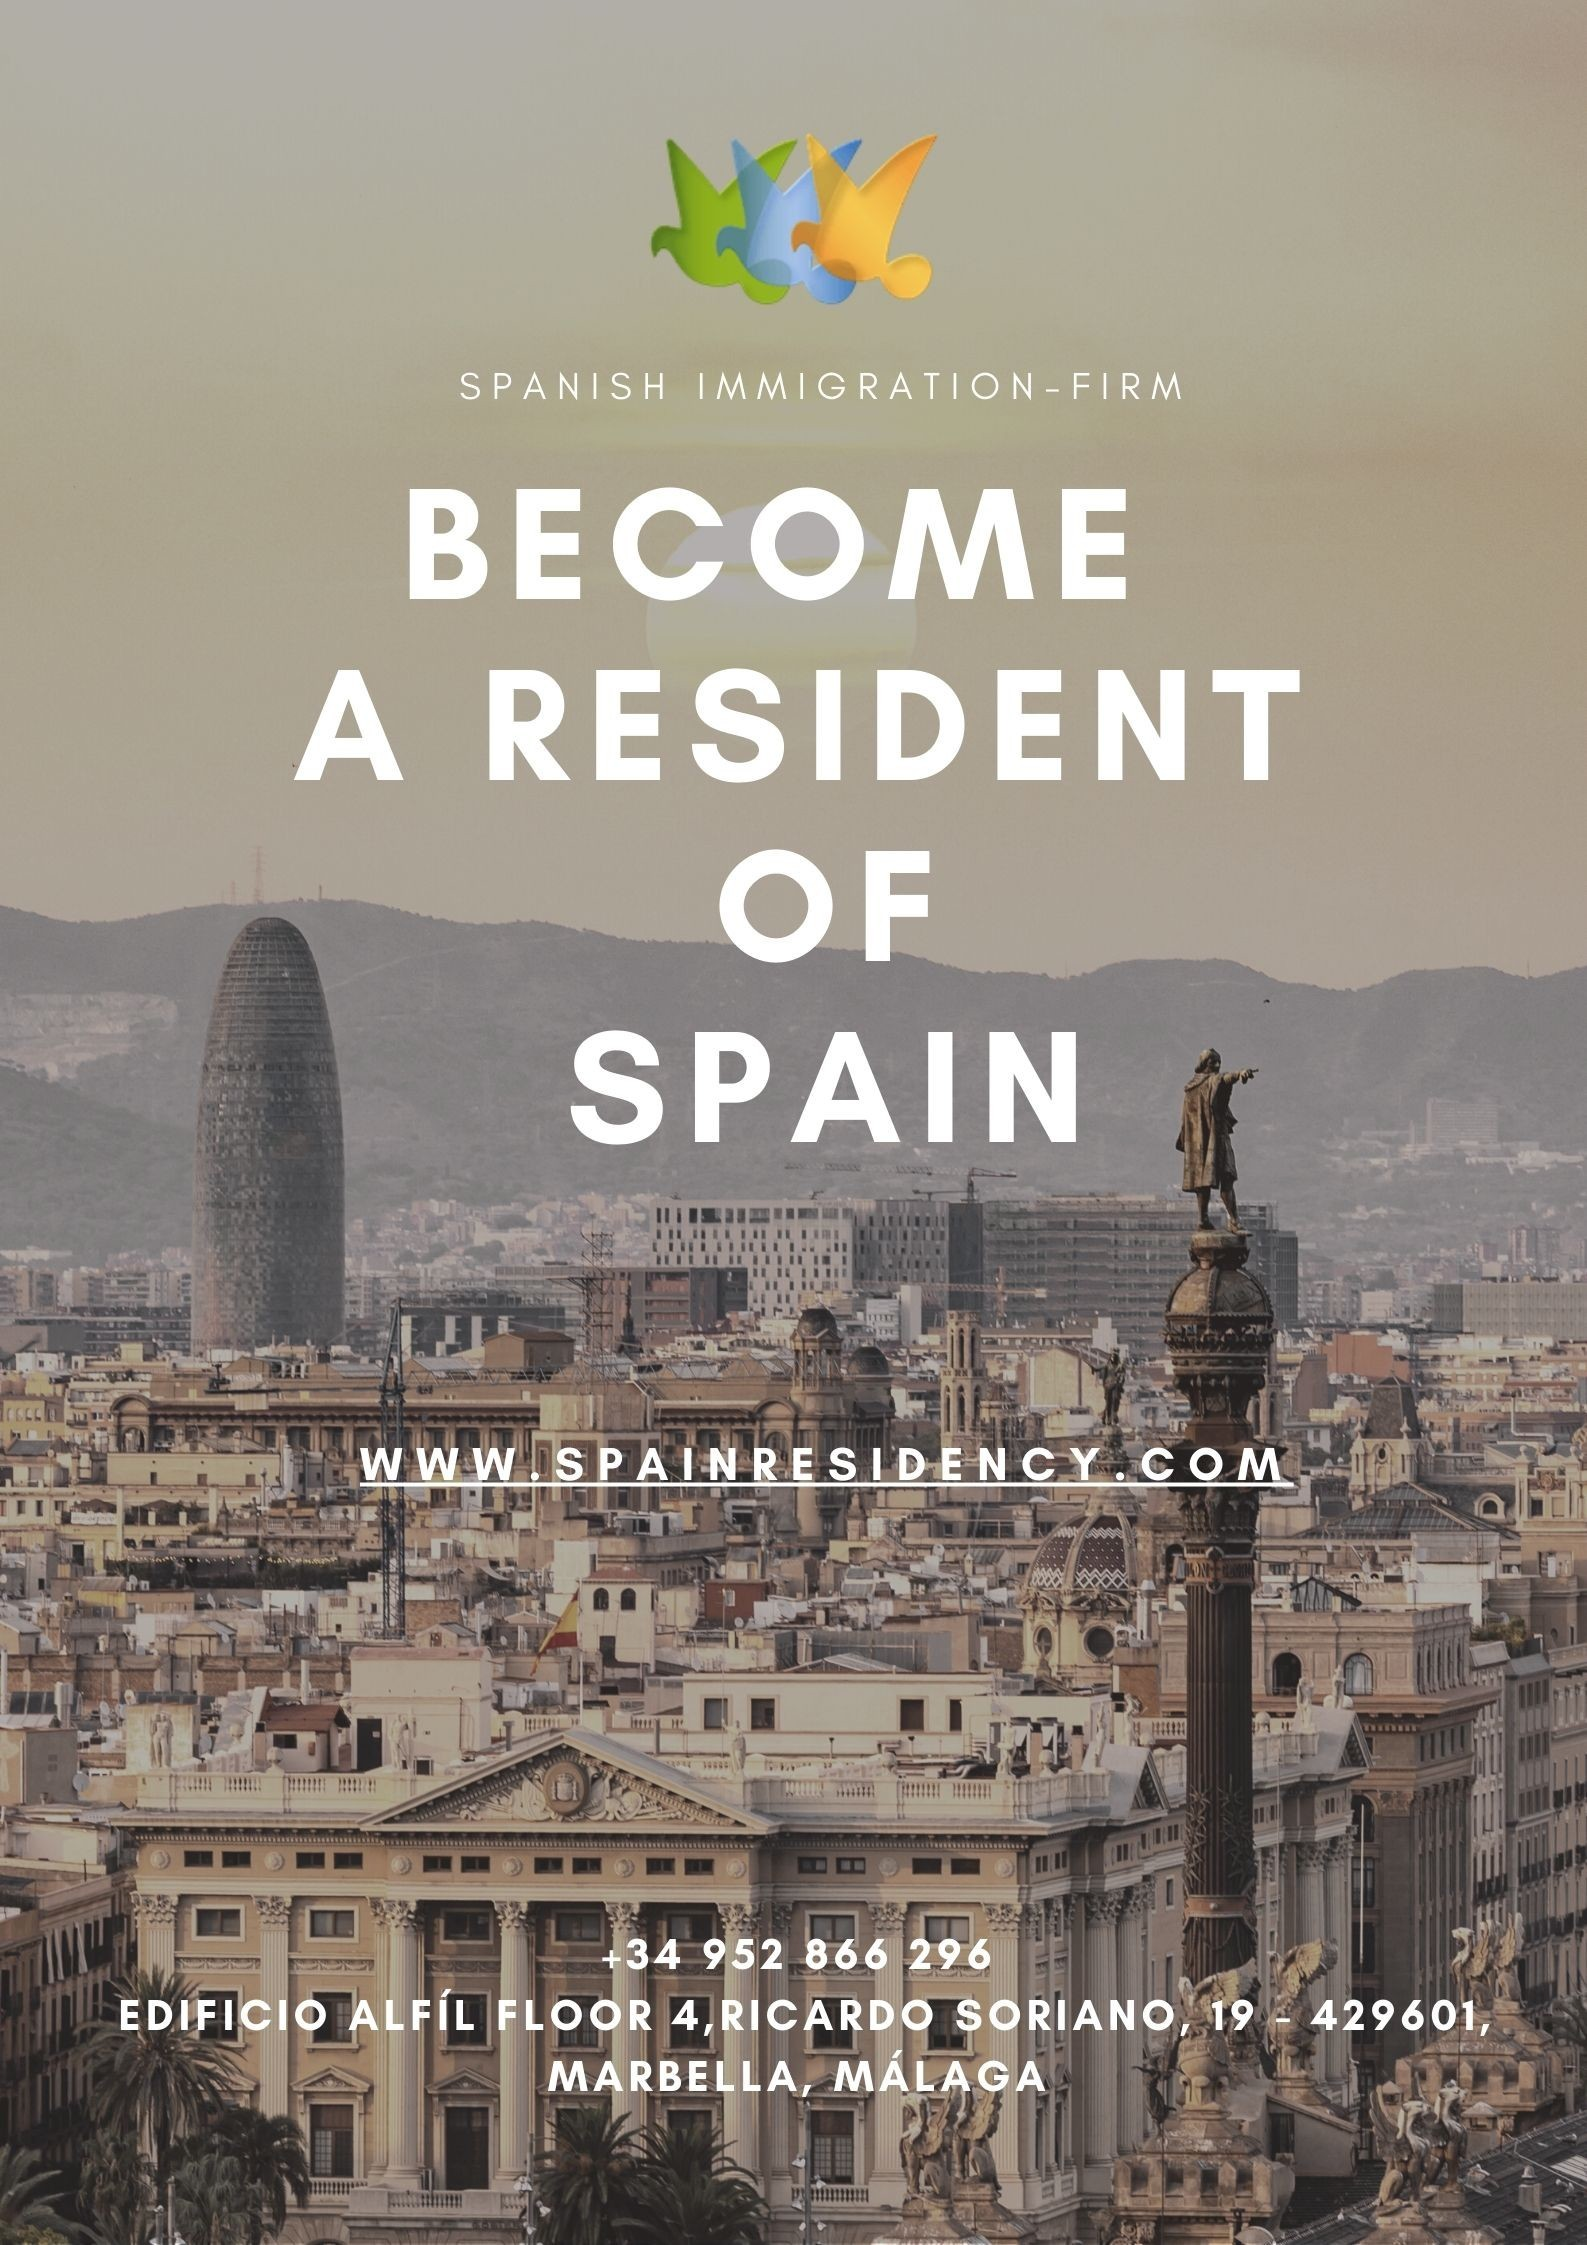 Become a resident of Spain